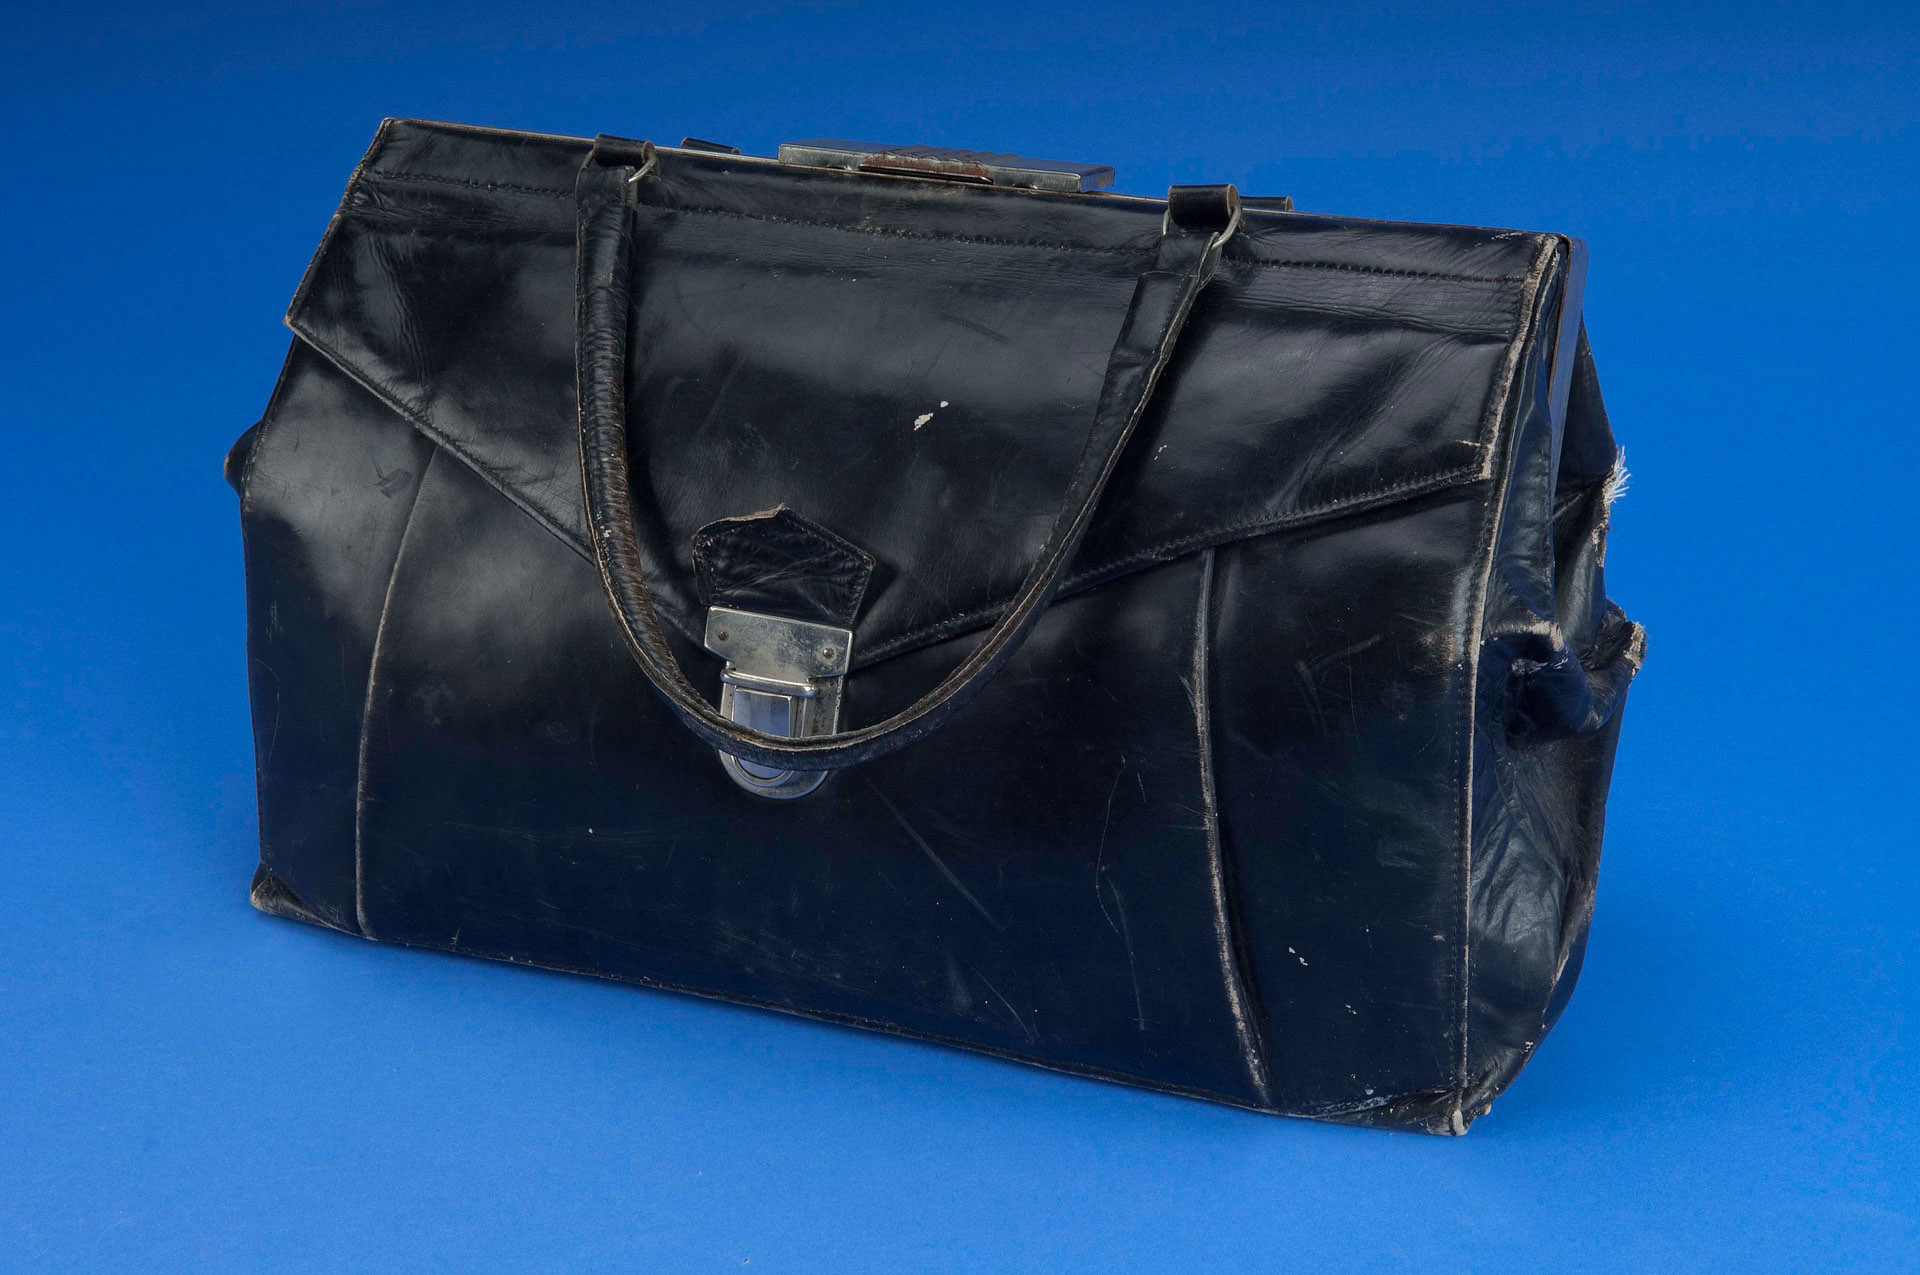 96e4f1d552a2 From closet to exhibition: Camilla Gottlieb's purse | National ...